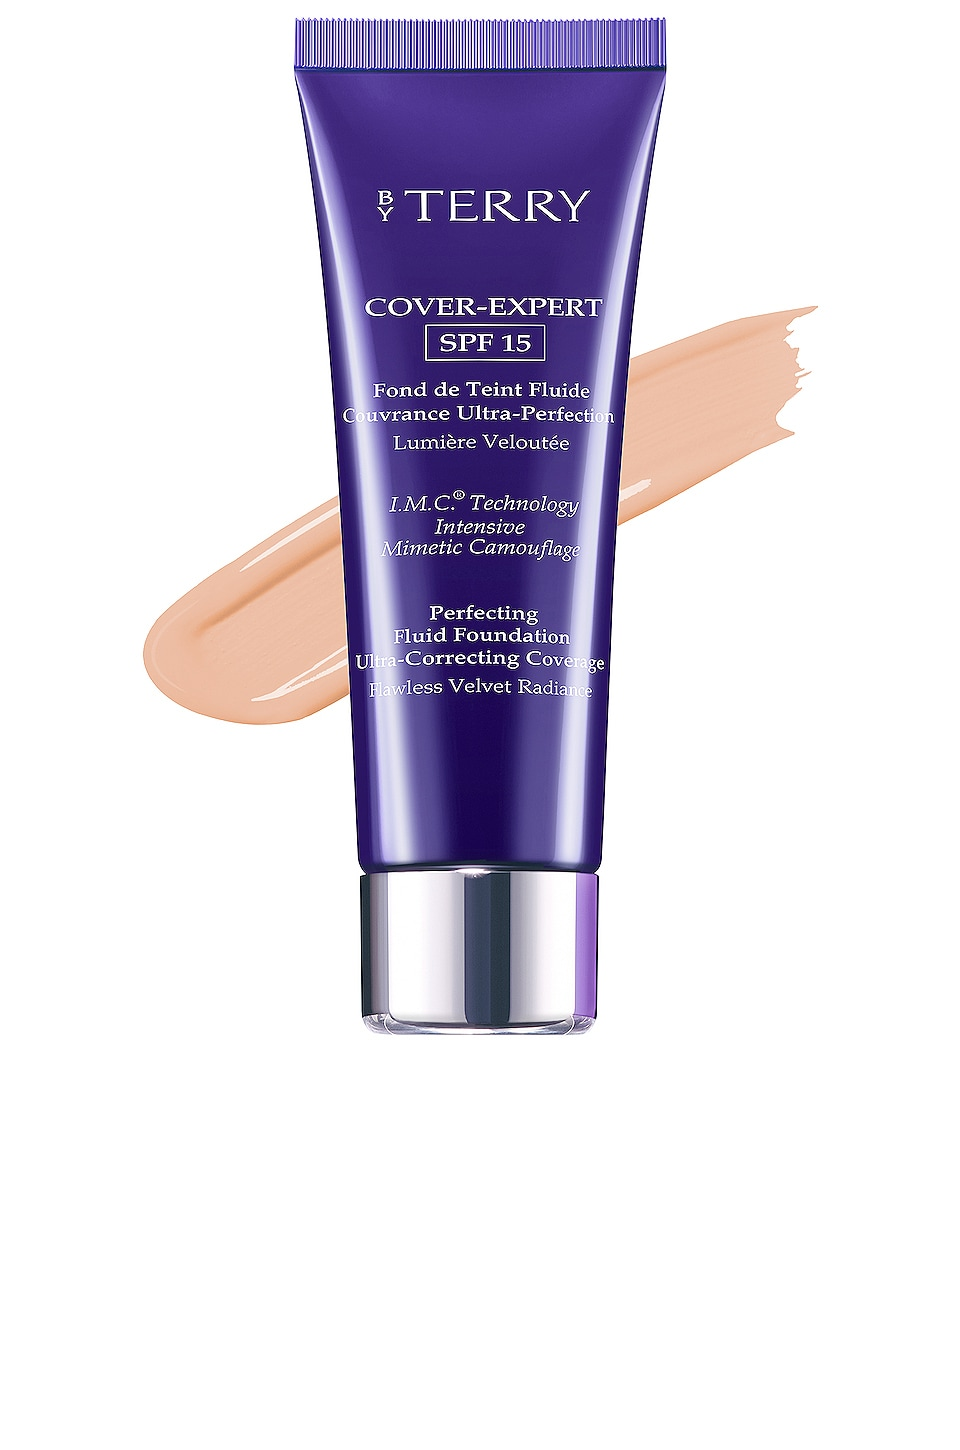 By Terry Cover Expert SPF 15 Foundation in Honey Beige